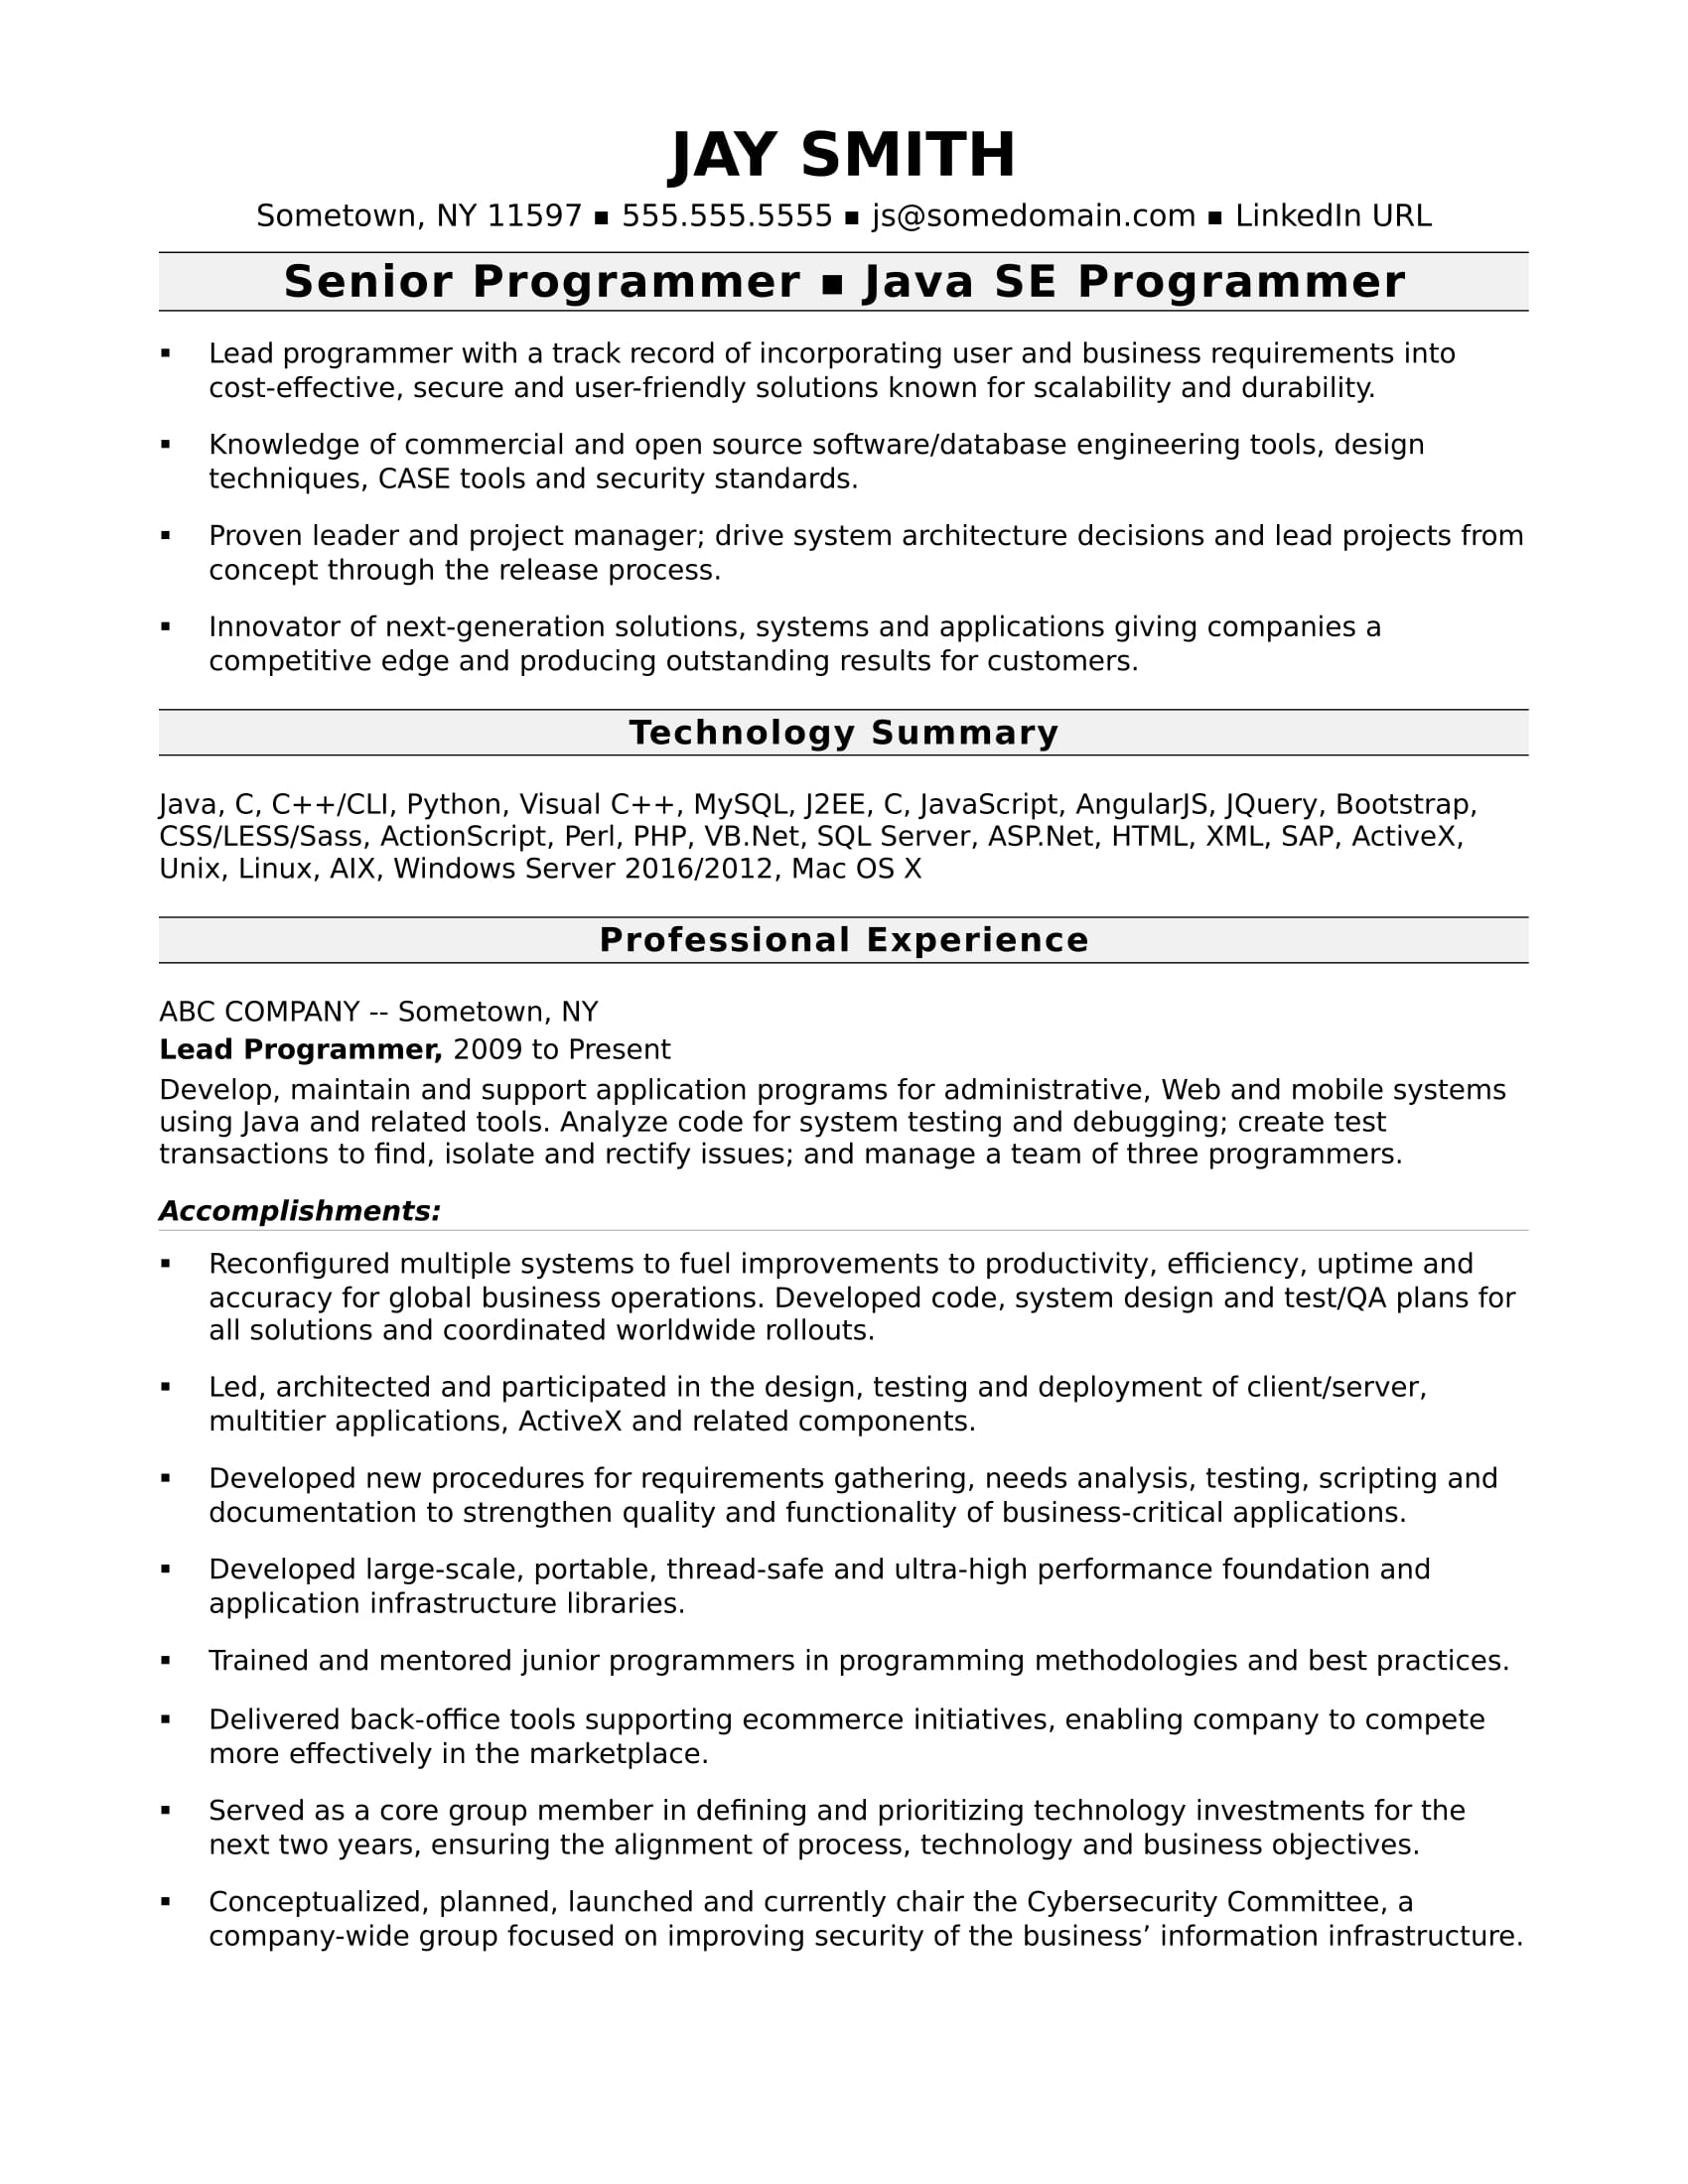 Actionscript Developer Cover Letter  Purchase Essays Purchase Custom Essay Papers Writing Service